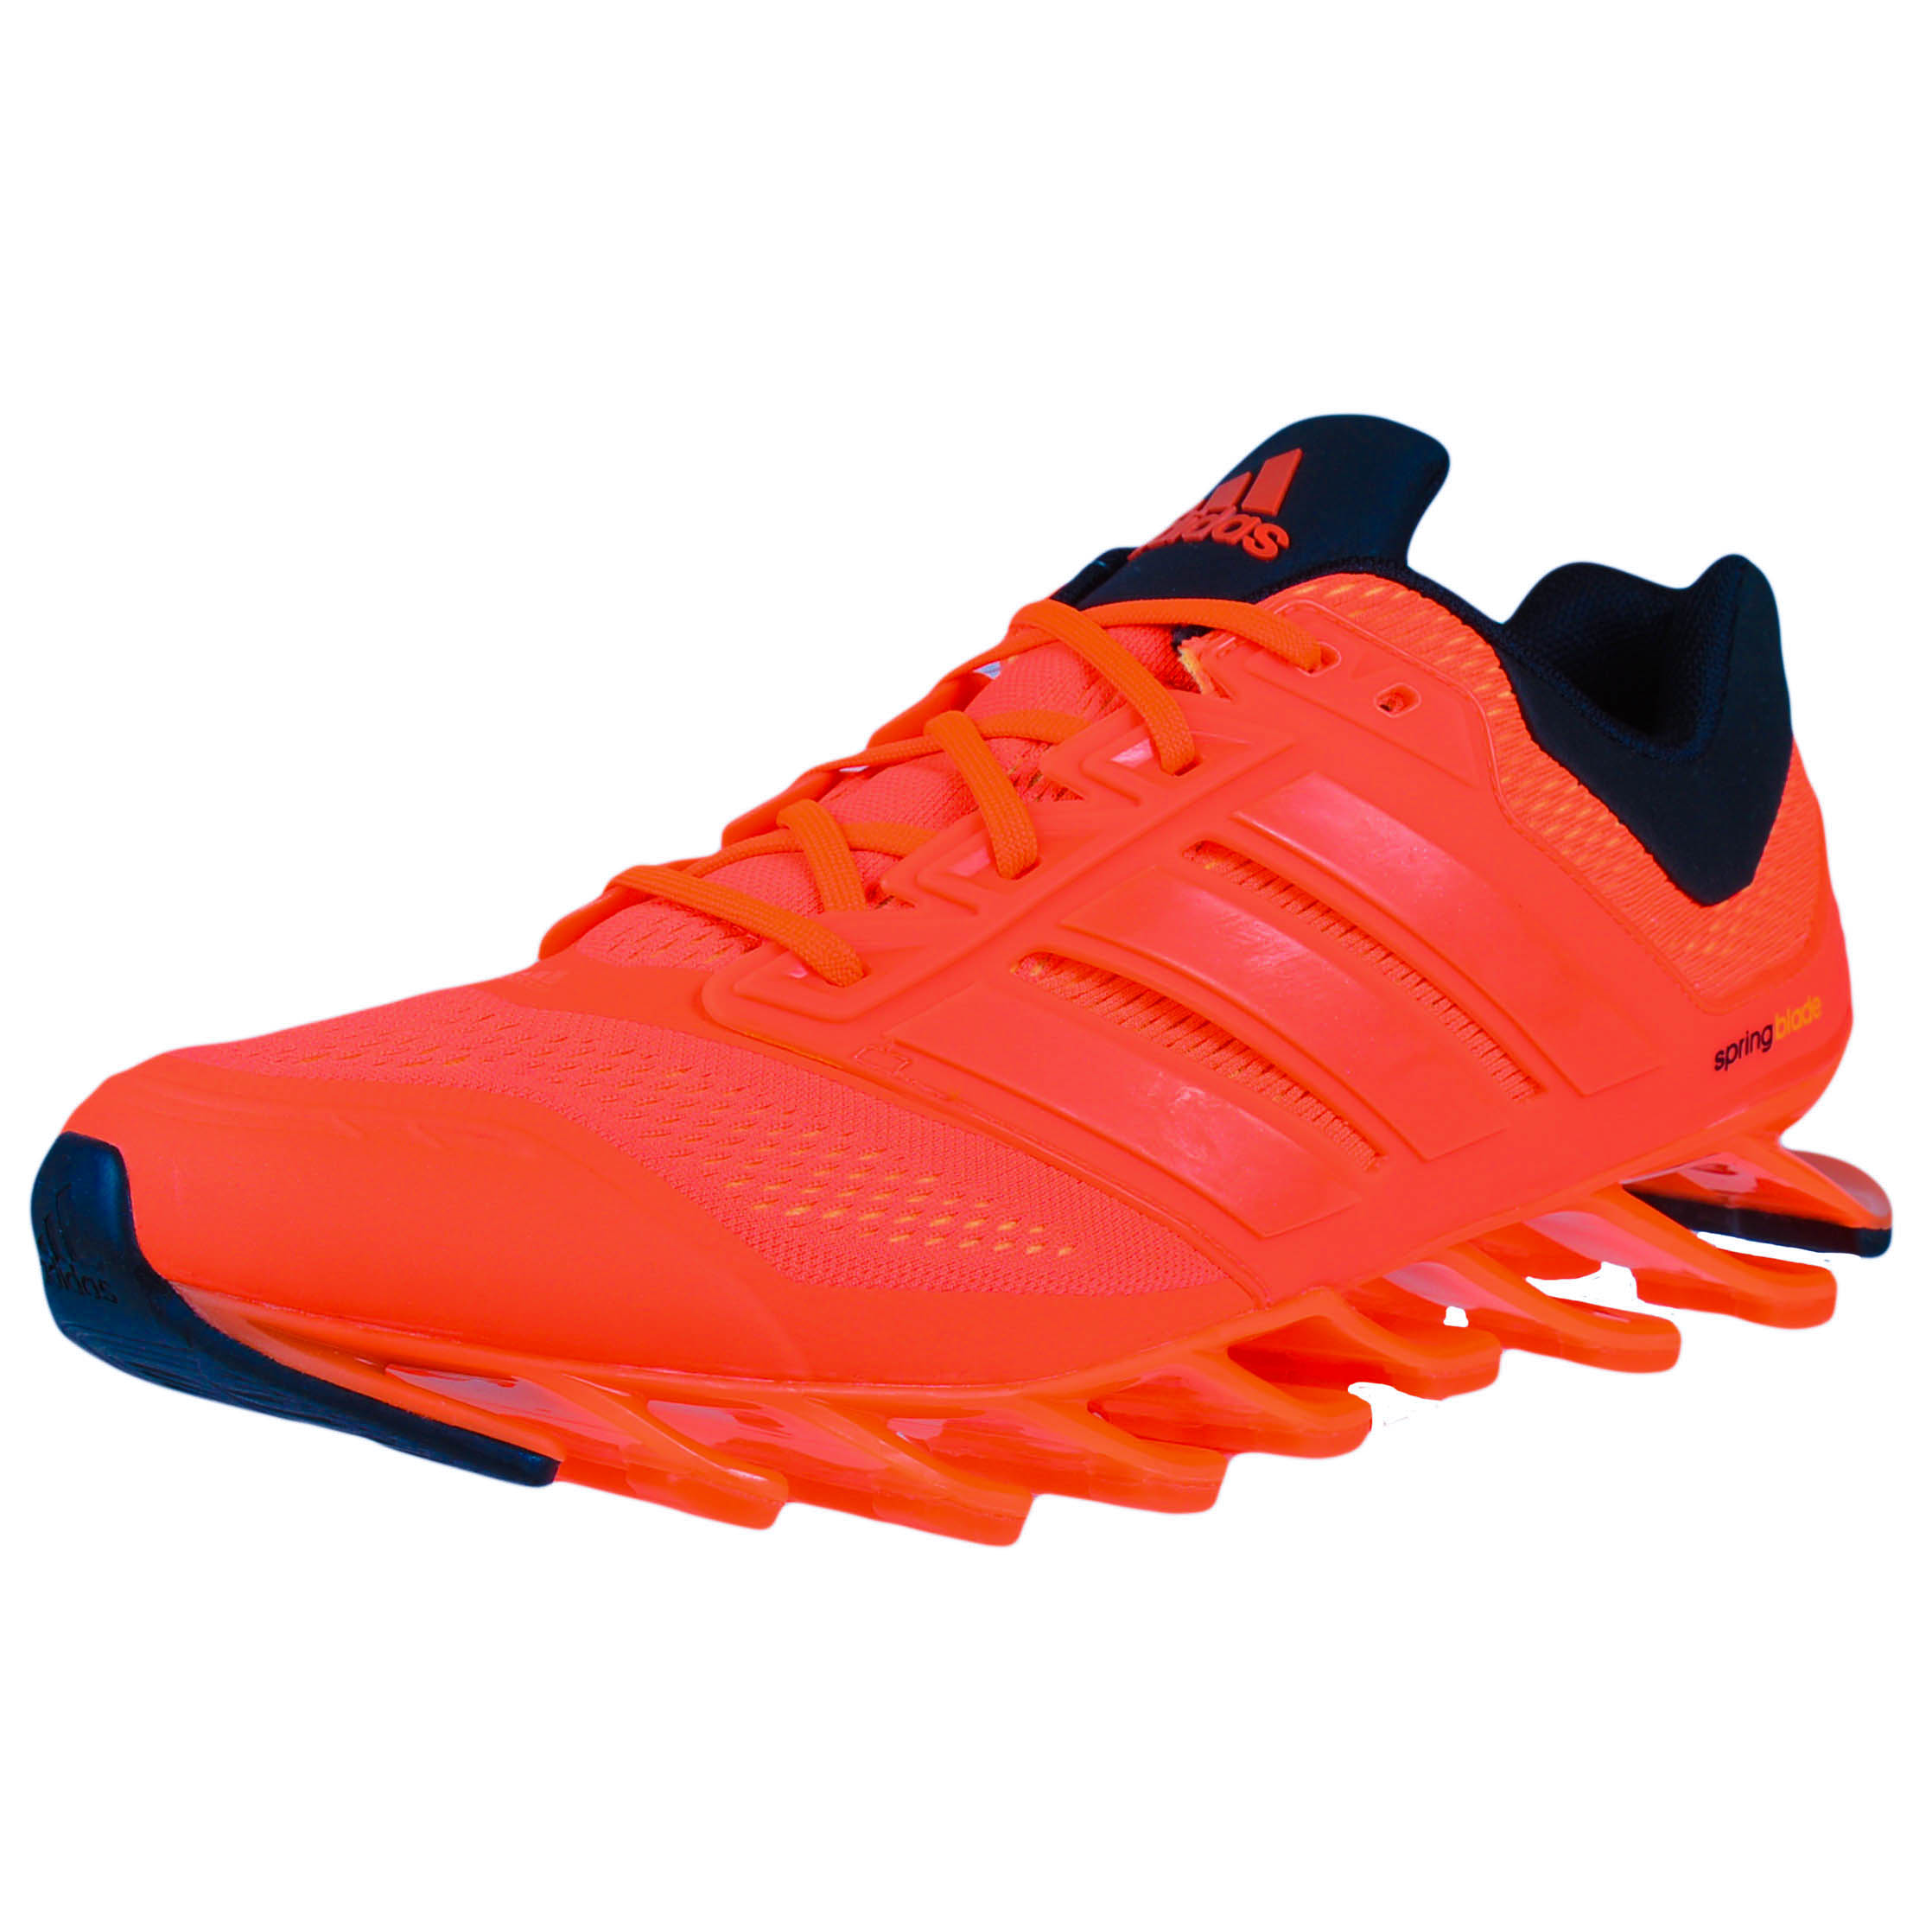 044fbe124c60 ... Blue BY3057 ADIDAS SPRINGBLADE DRIVE M RUNNING SHOES SOLAR RED CORE  BLACK RED D73957 SIZE 13 adidas Men s ...